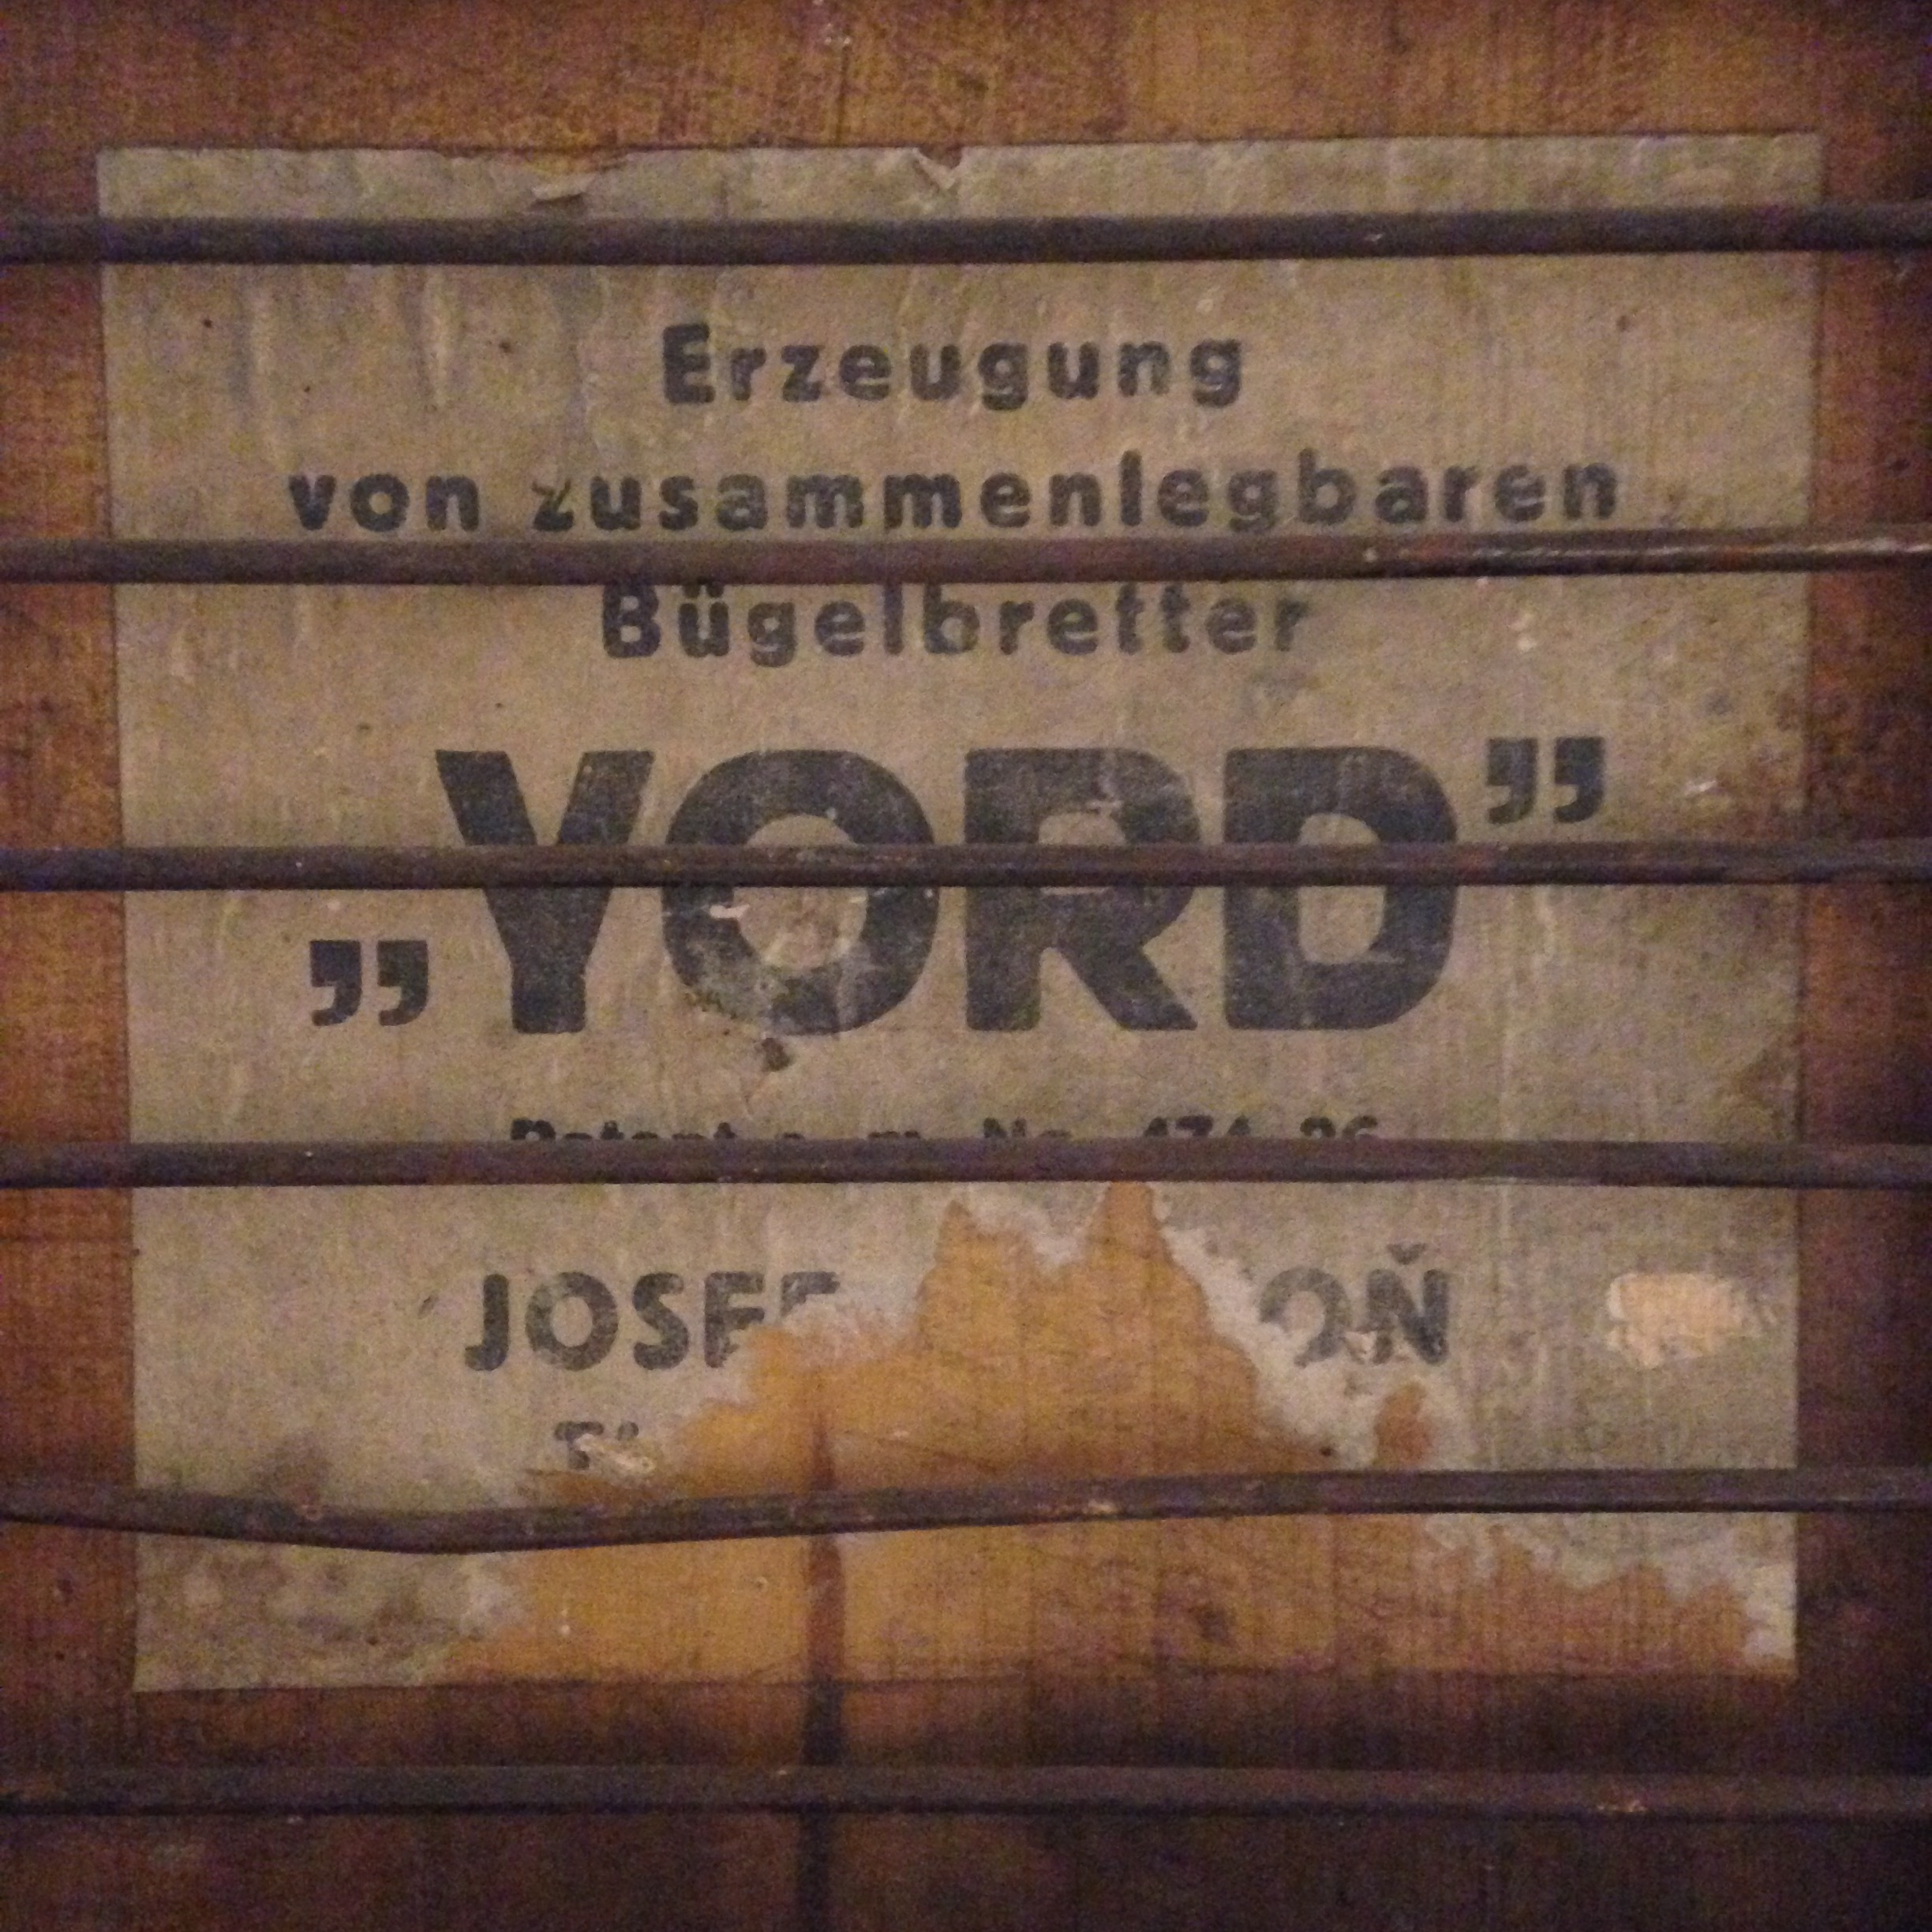 Beautiful old typography from when I explored the White Stuff storage rooms!